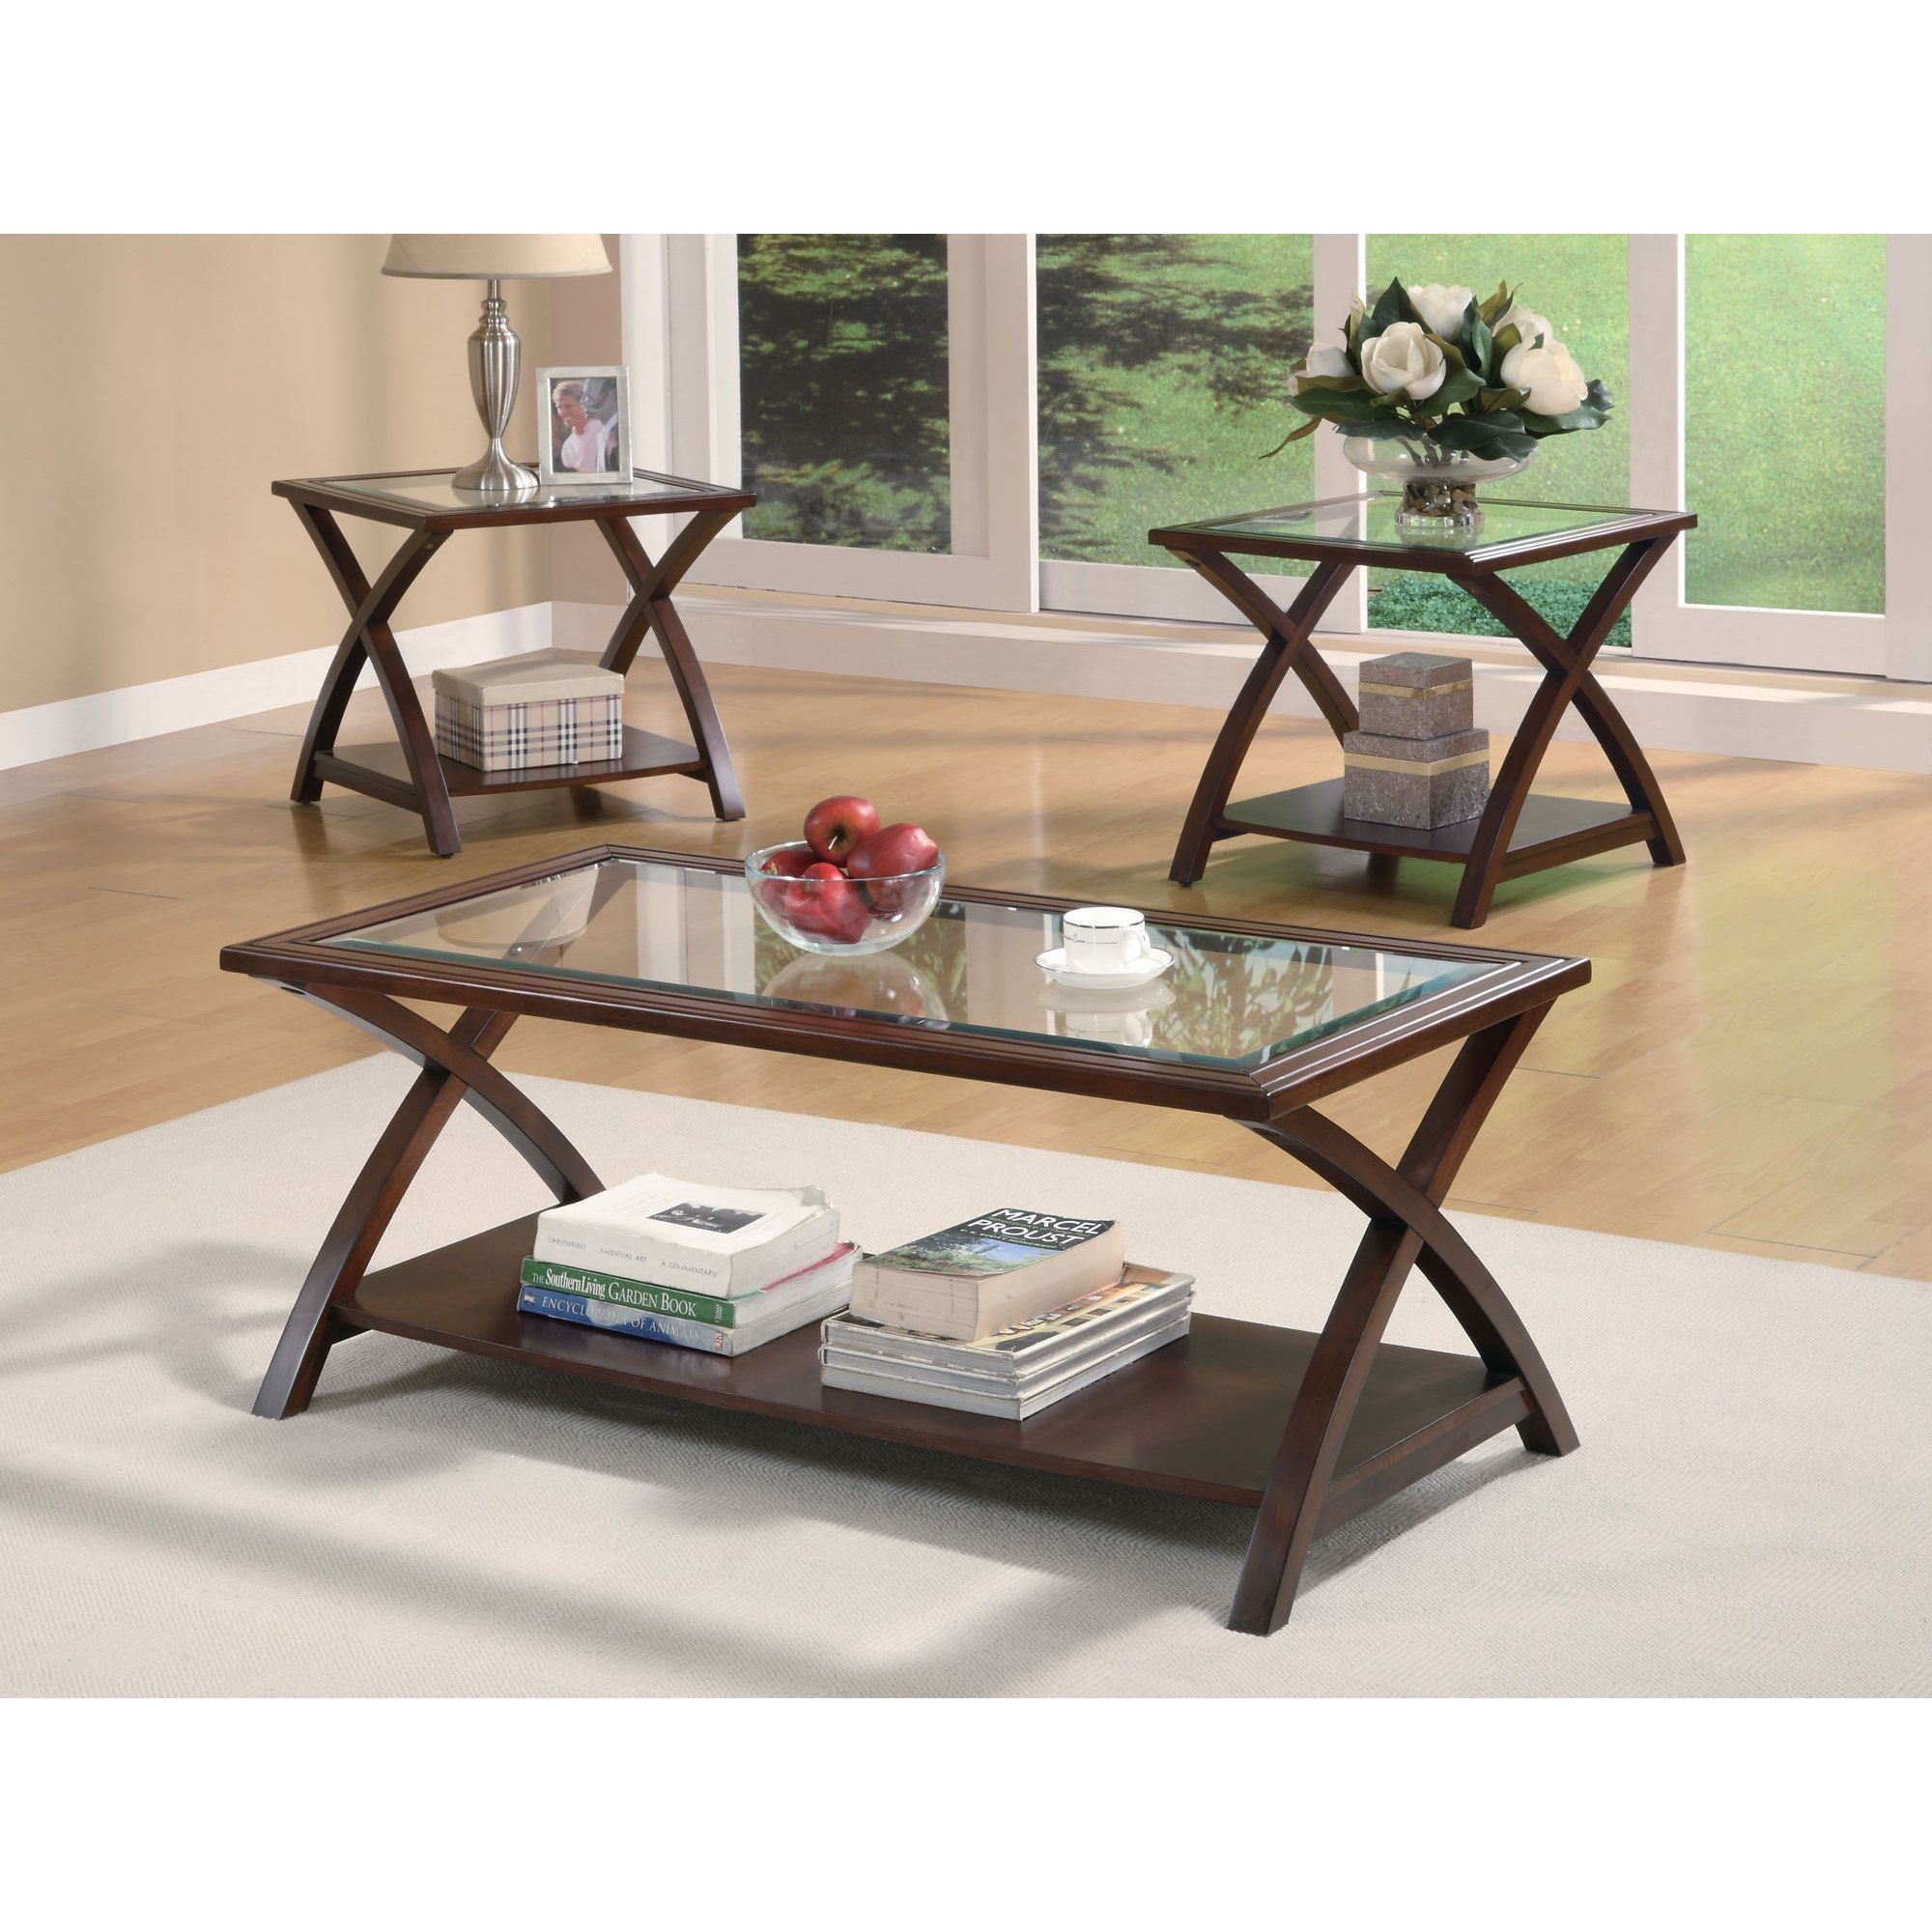 Give Your Living Room A Spot For Drinks And Magazines With This Beautiful Coffee  Table.